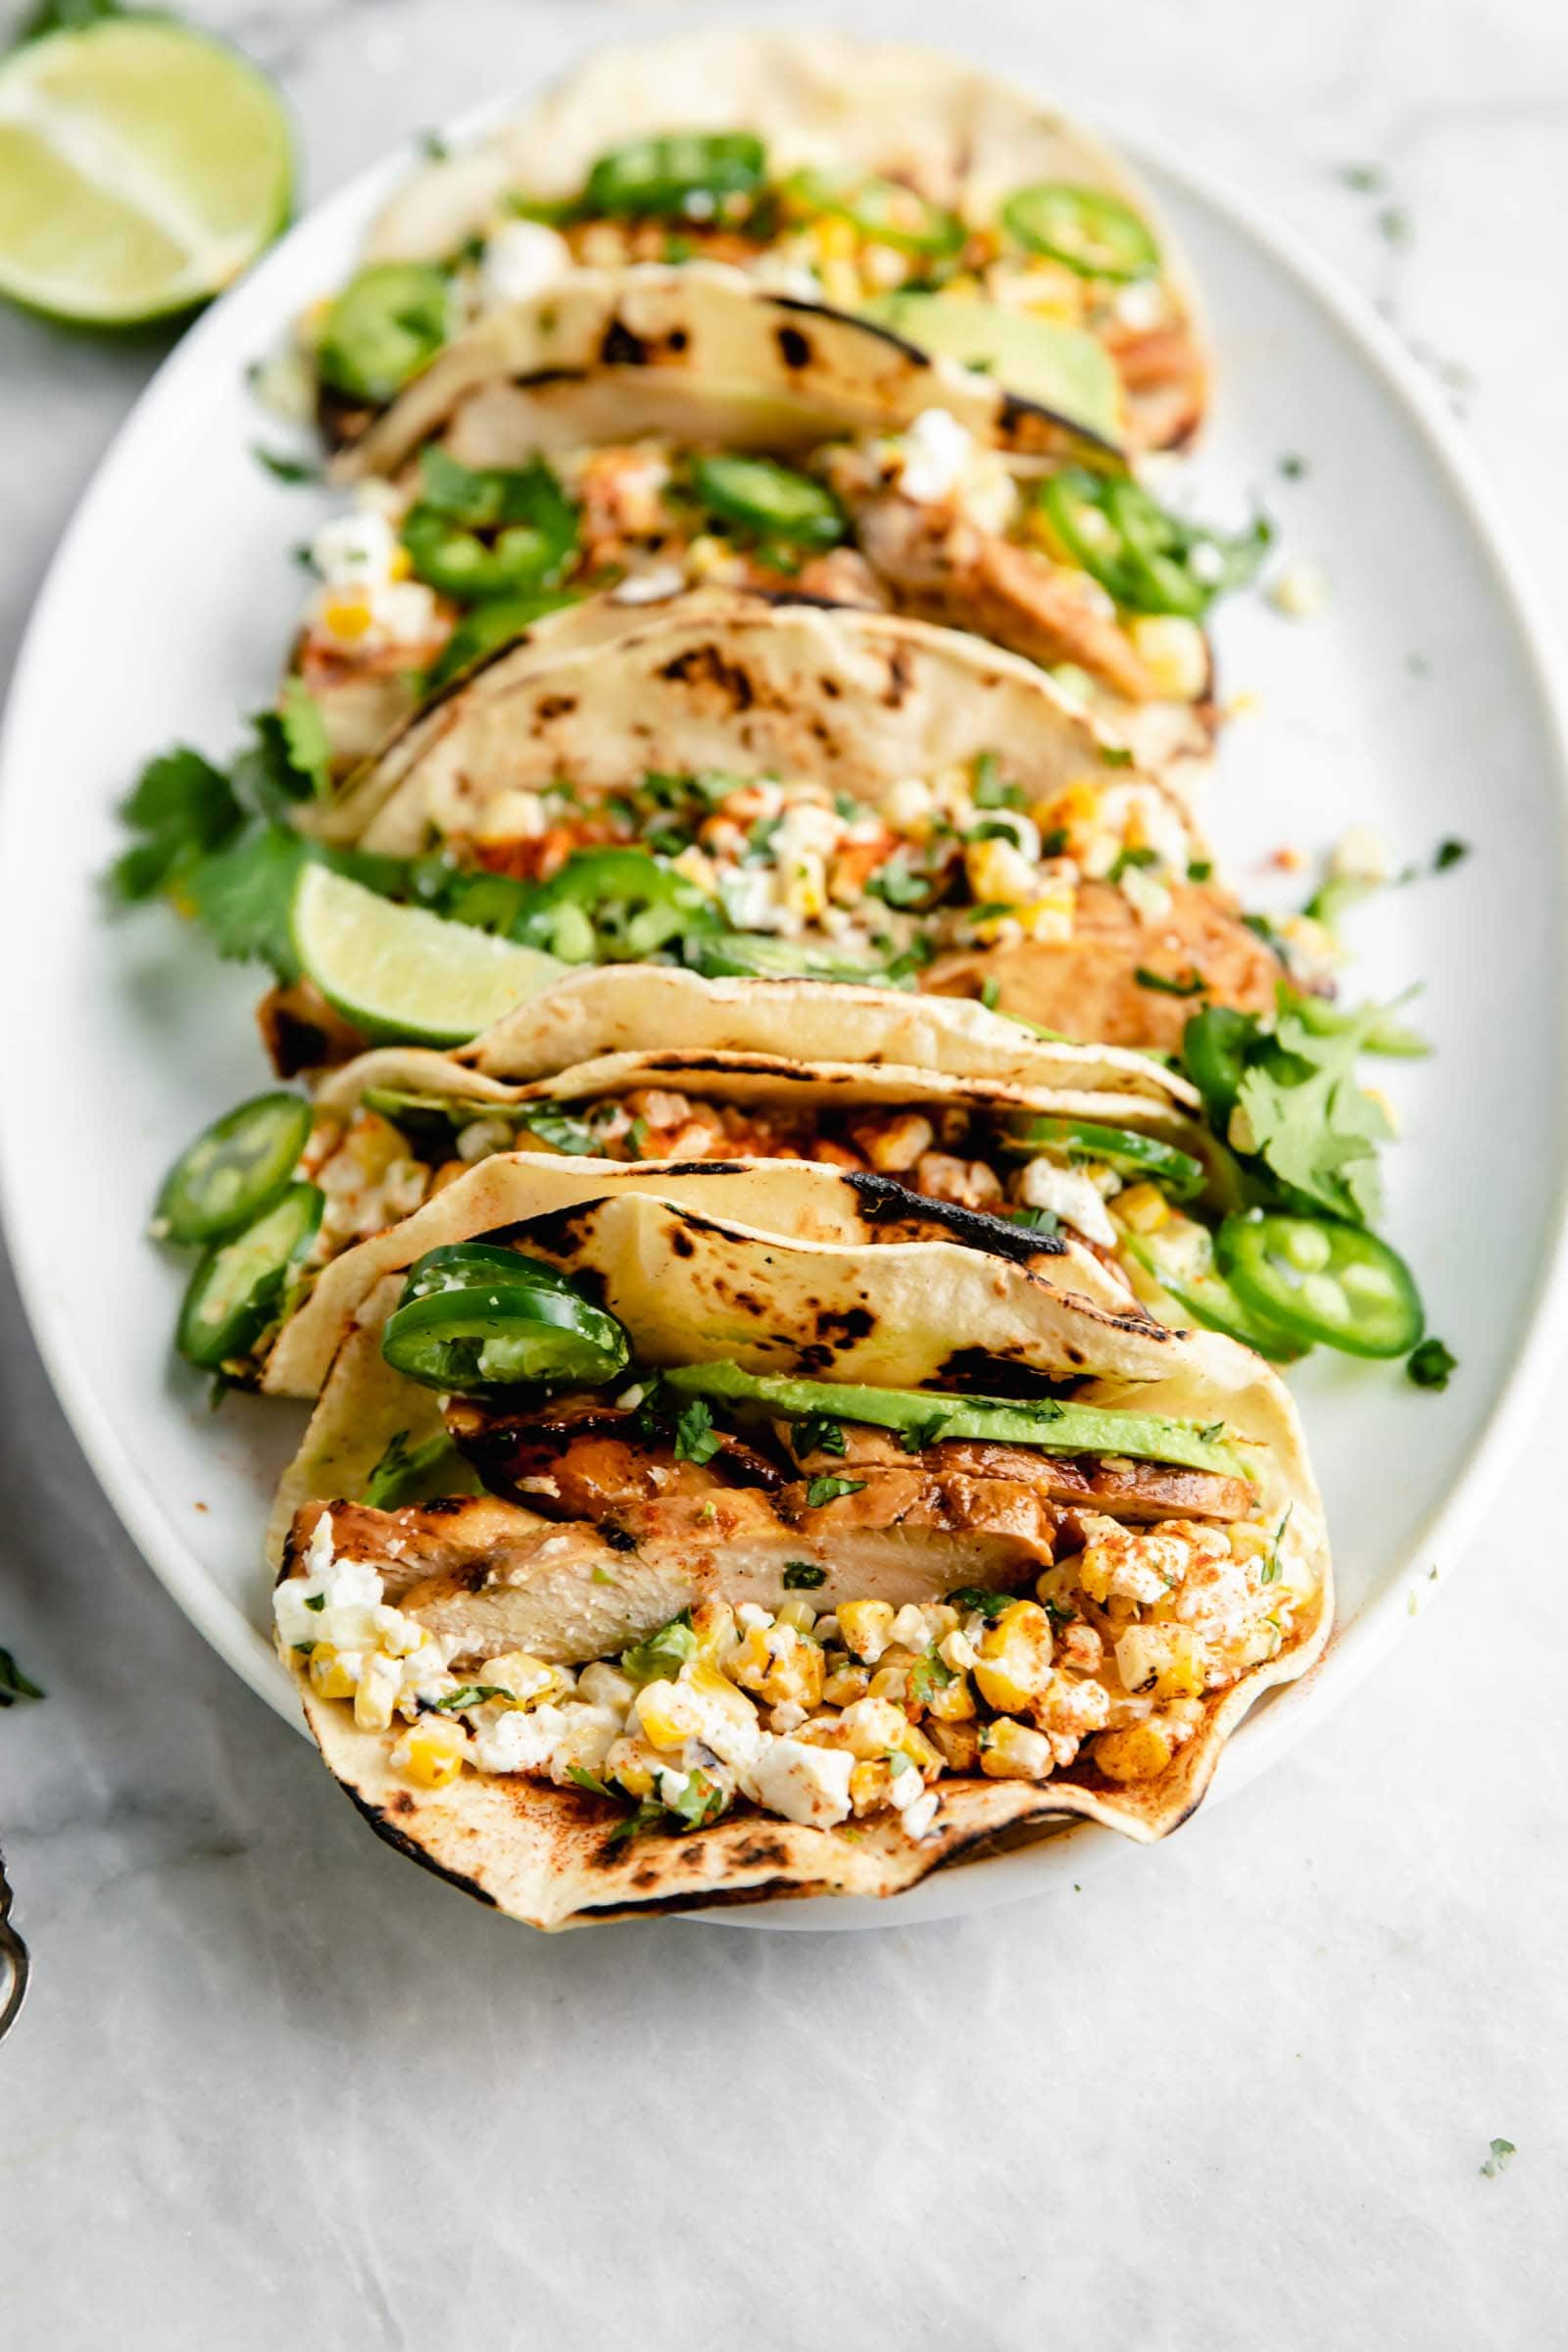 loaded barbecue chicken street corn tacos on a plate